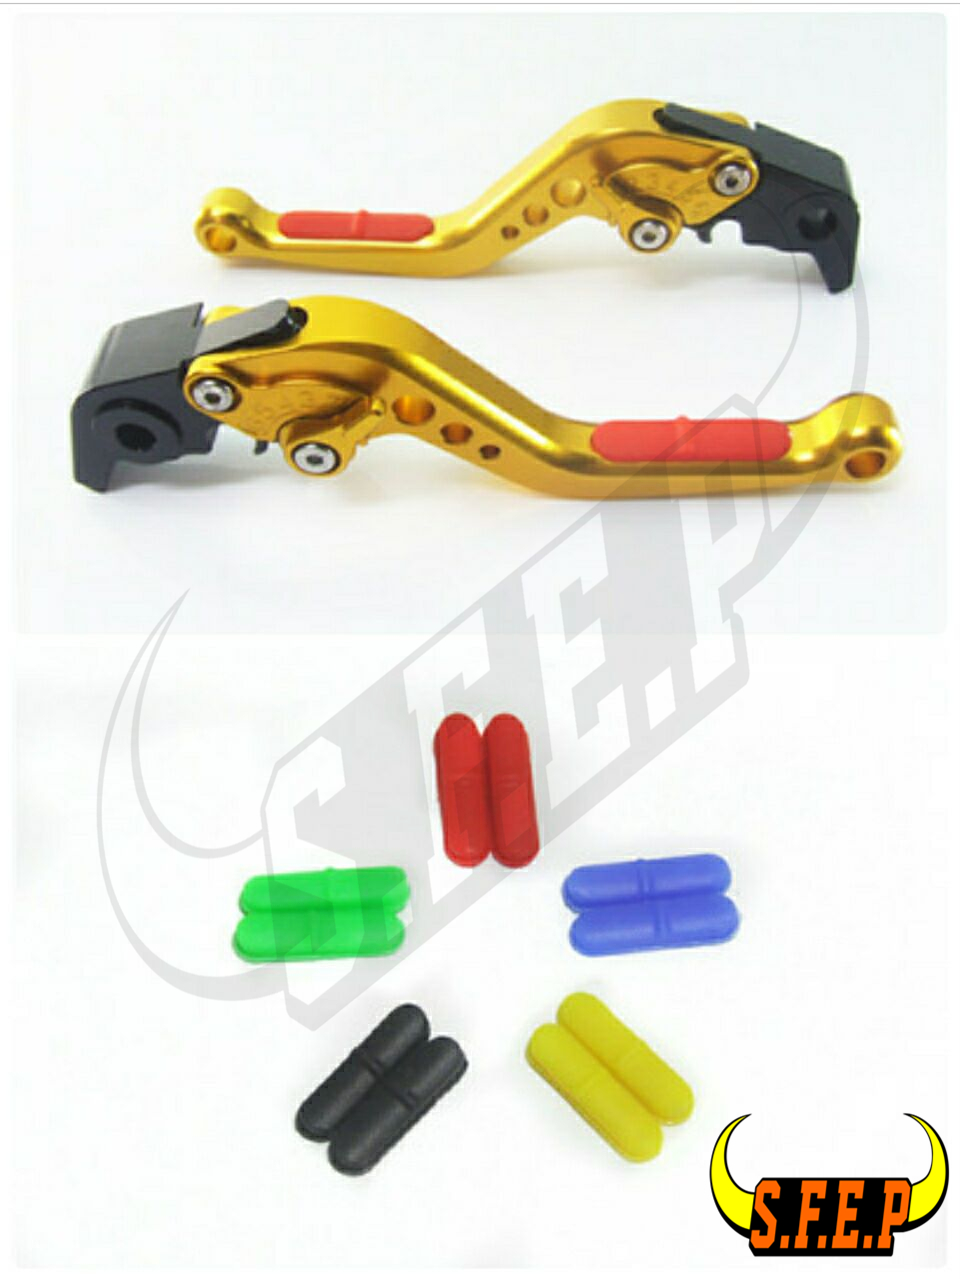 CNC Adjustable Motorcycle Brake and Clutch Levers with Anti-Slip For Ducati HYPERMOTARD 939 SP 2016-2017